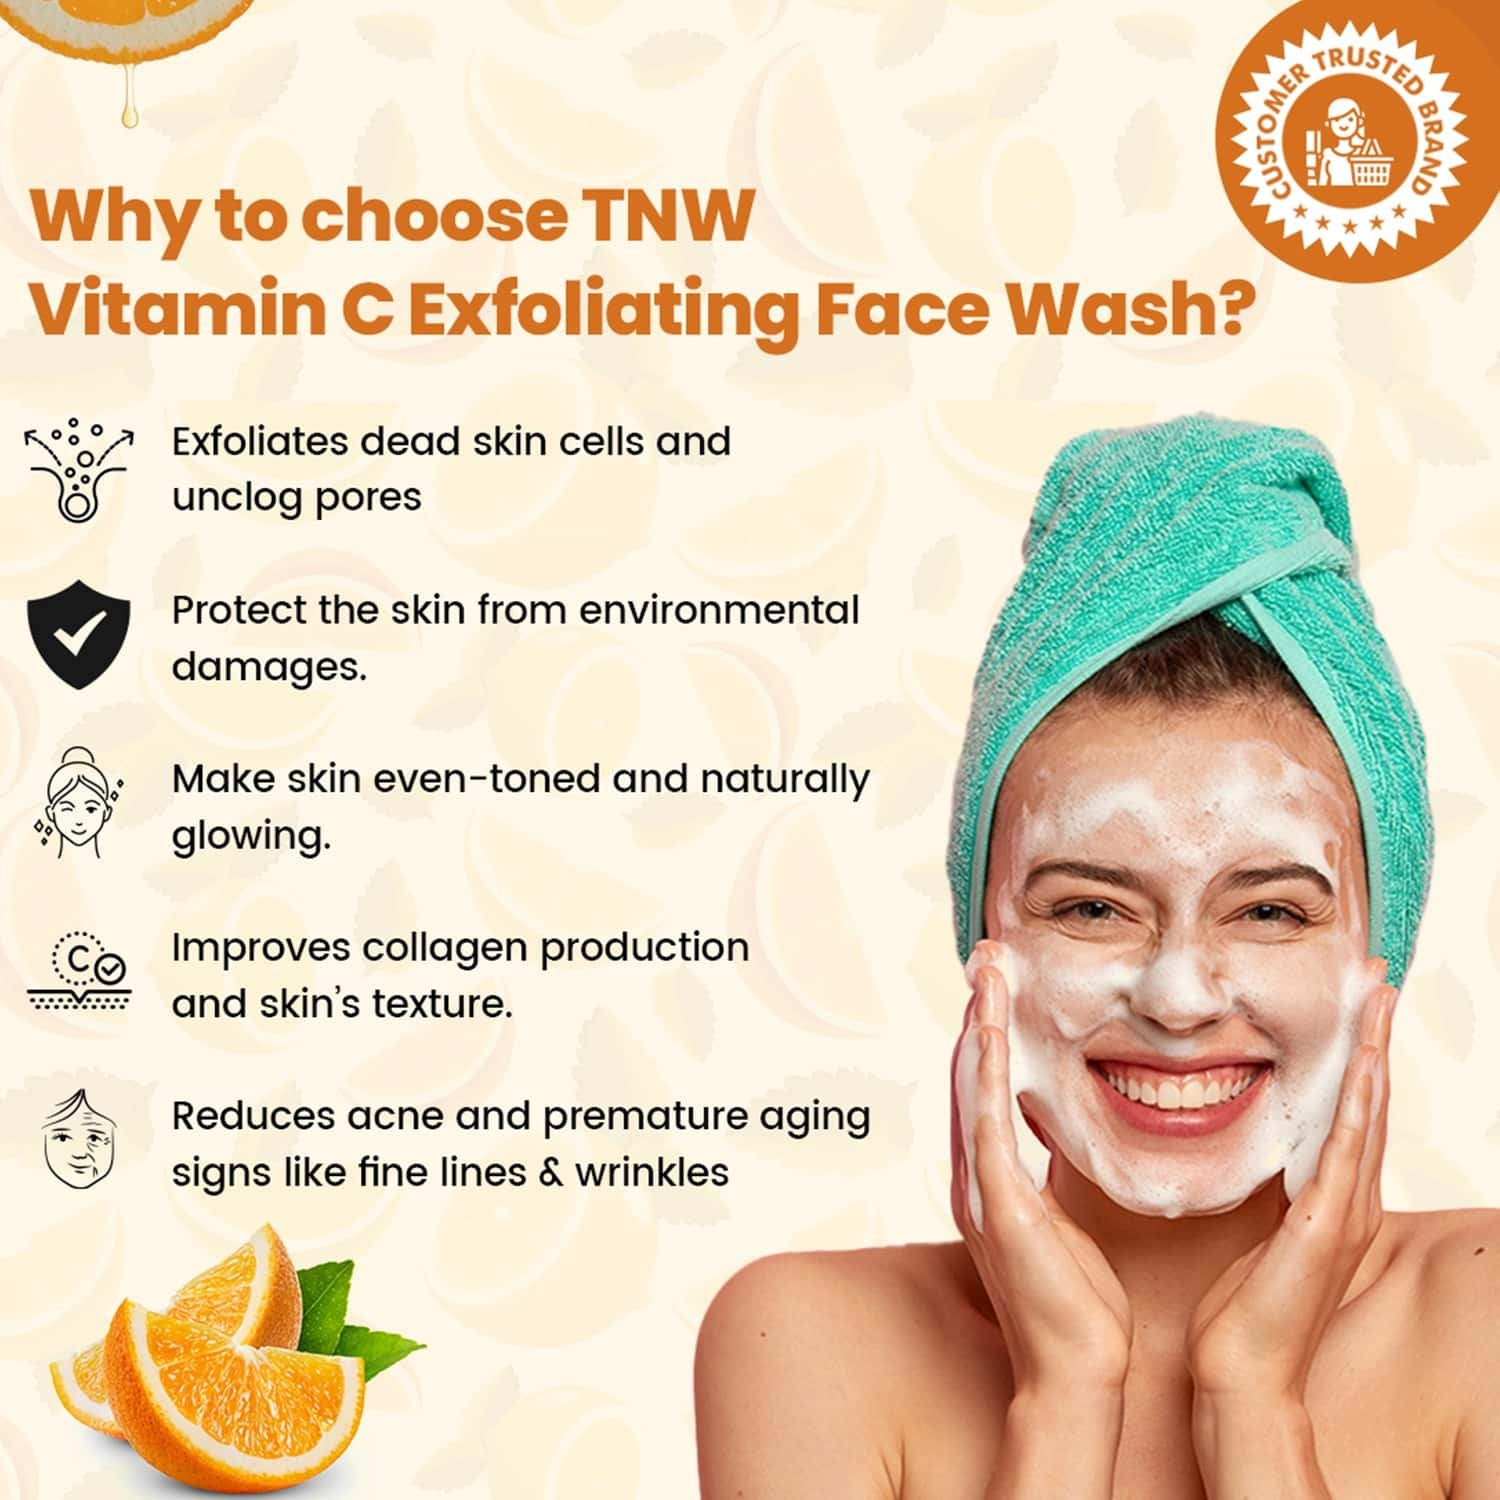 Tnw- The Natural Wash Vitamin C Exfoliating Face Wash For Refreshed Toned & Glowing Face - 100 Ml